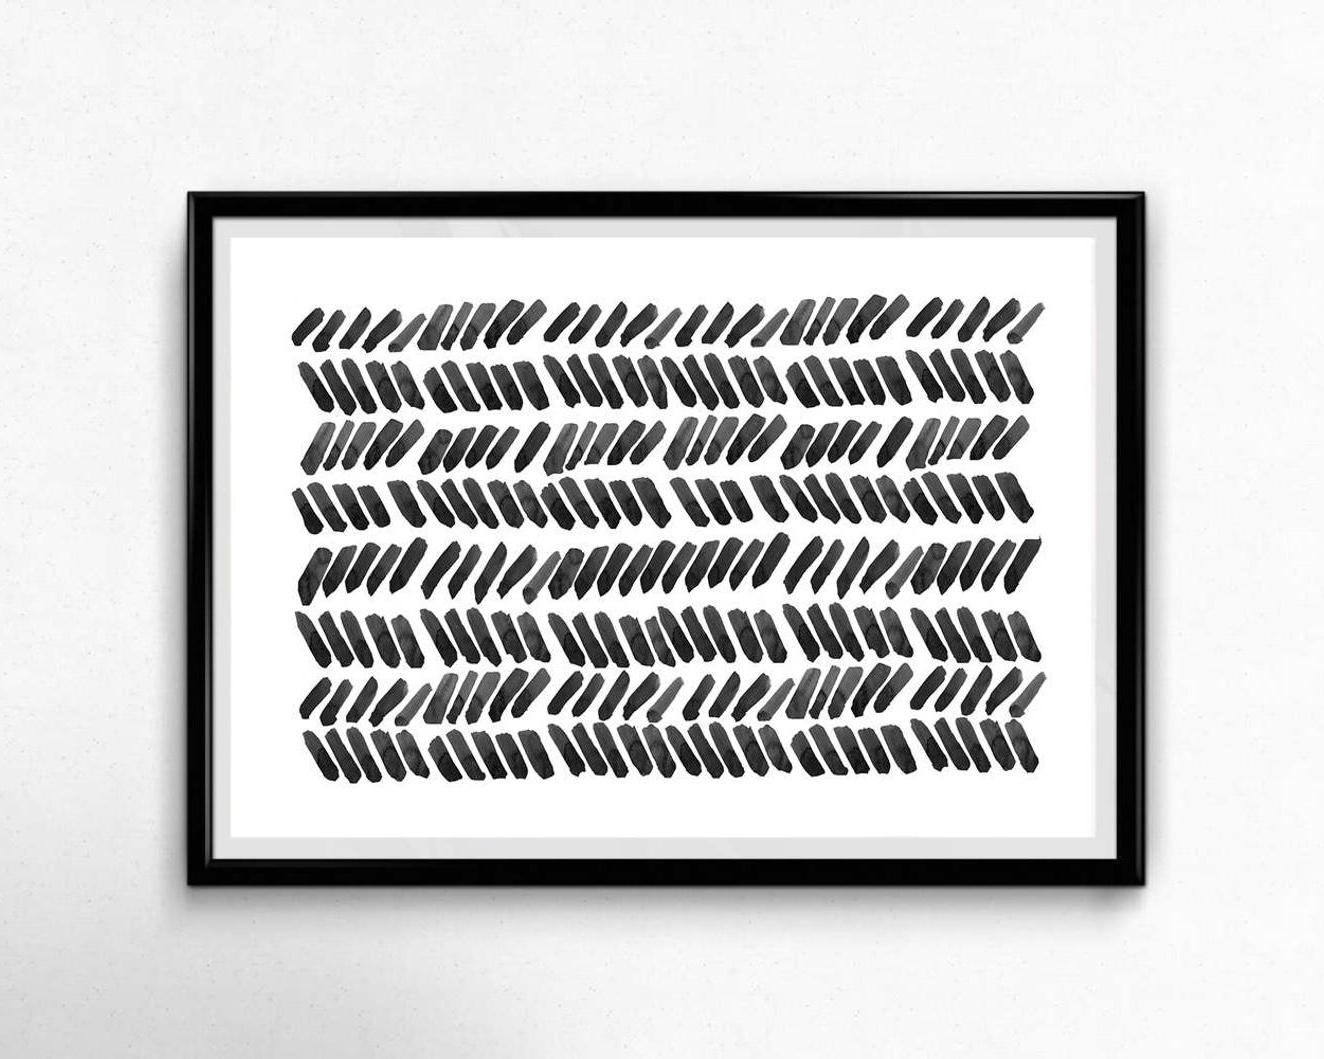 framed black and white art with abstract design